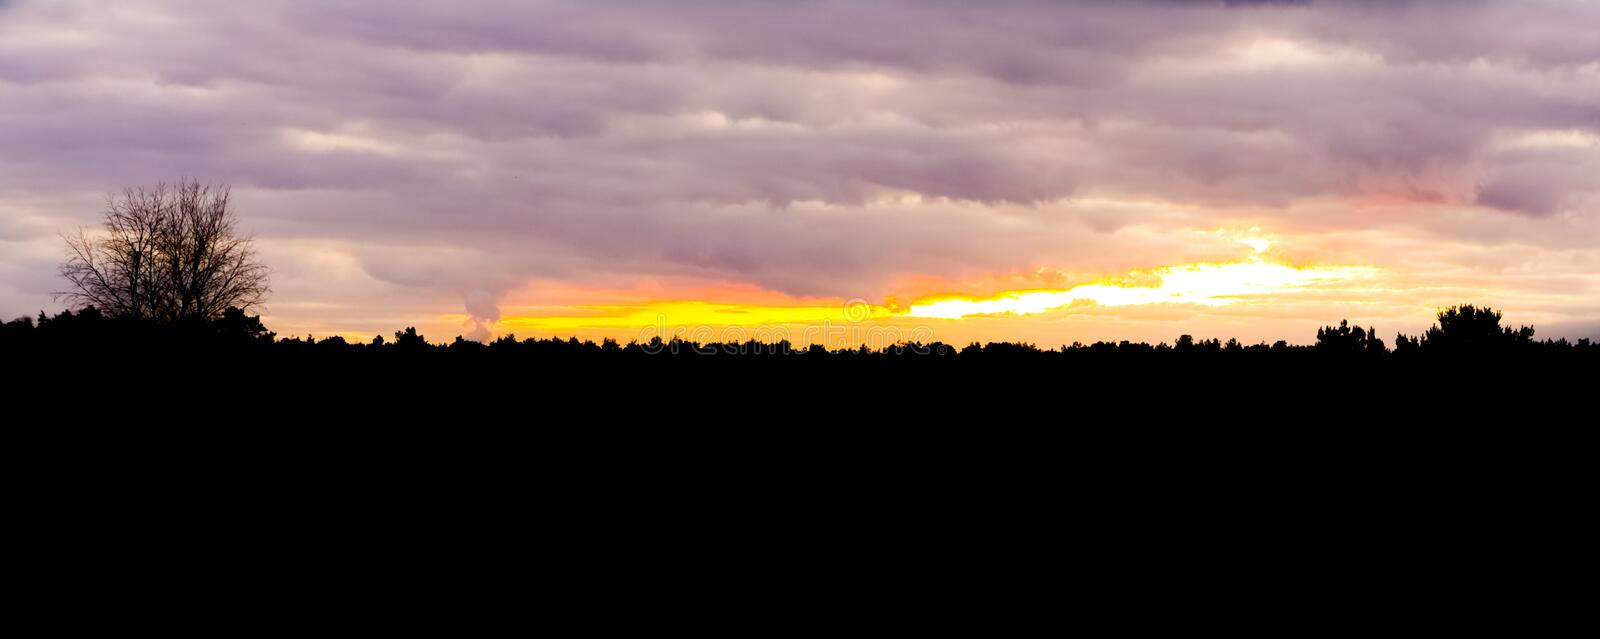 Dark silhouette of a heather forest landscape during the sunset, colorful sky and clouds royalty free stock image